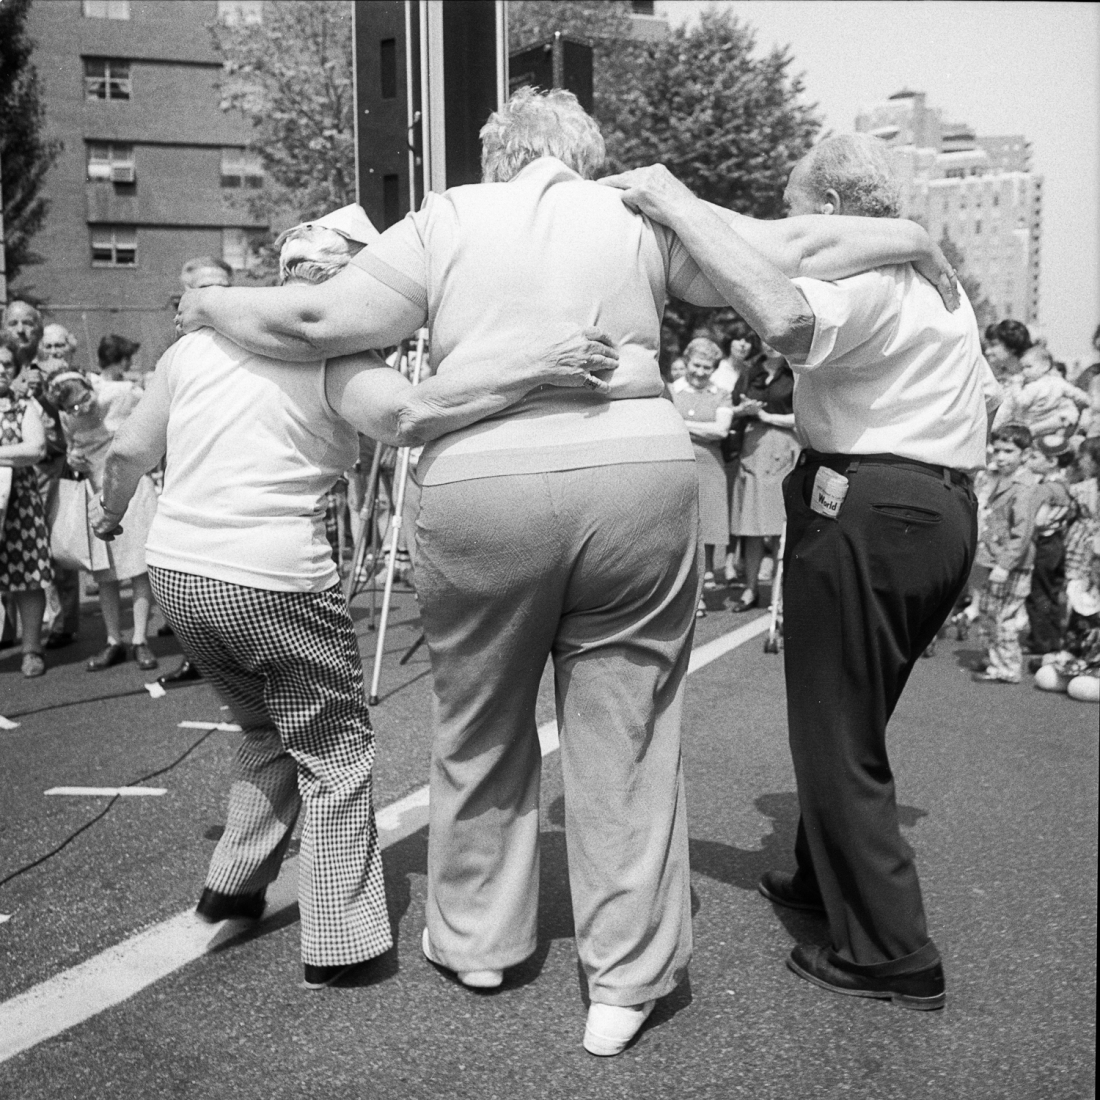 Dancing at The Lower East Side Street Festival, NY, June 1978 © Meryl Meisler